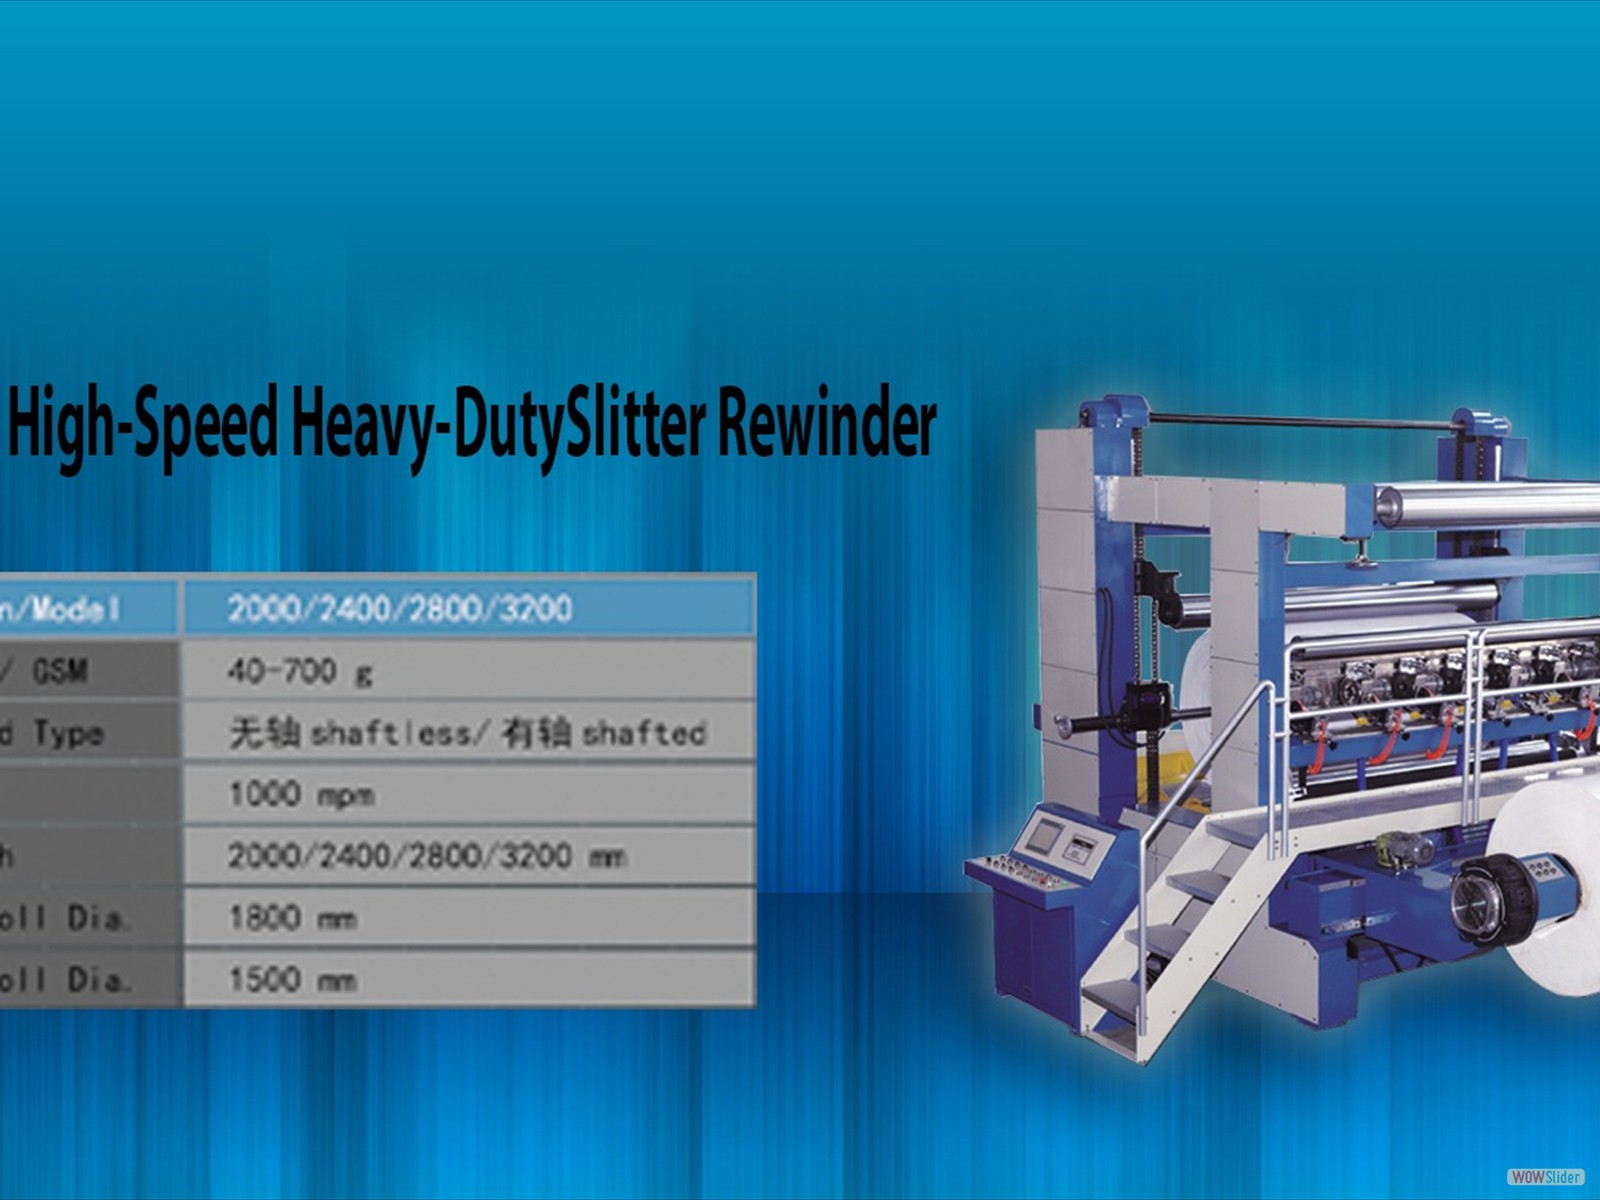 Speedwell High-Speed Heavy-DutySlitter Rewinder